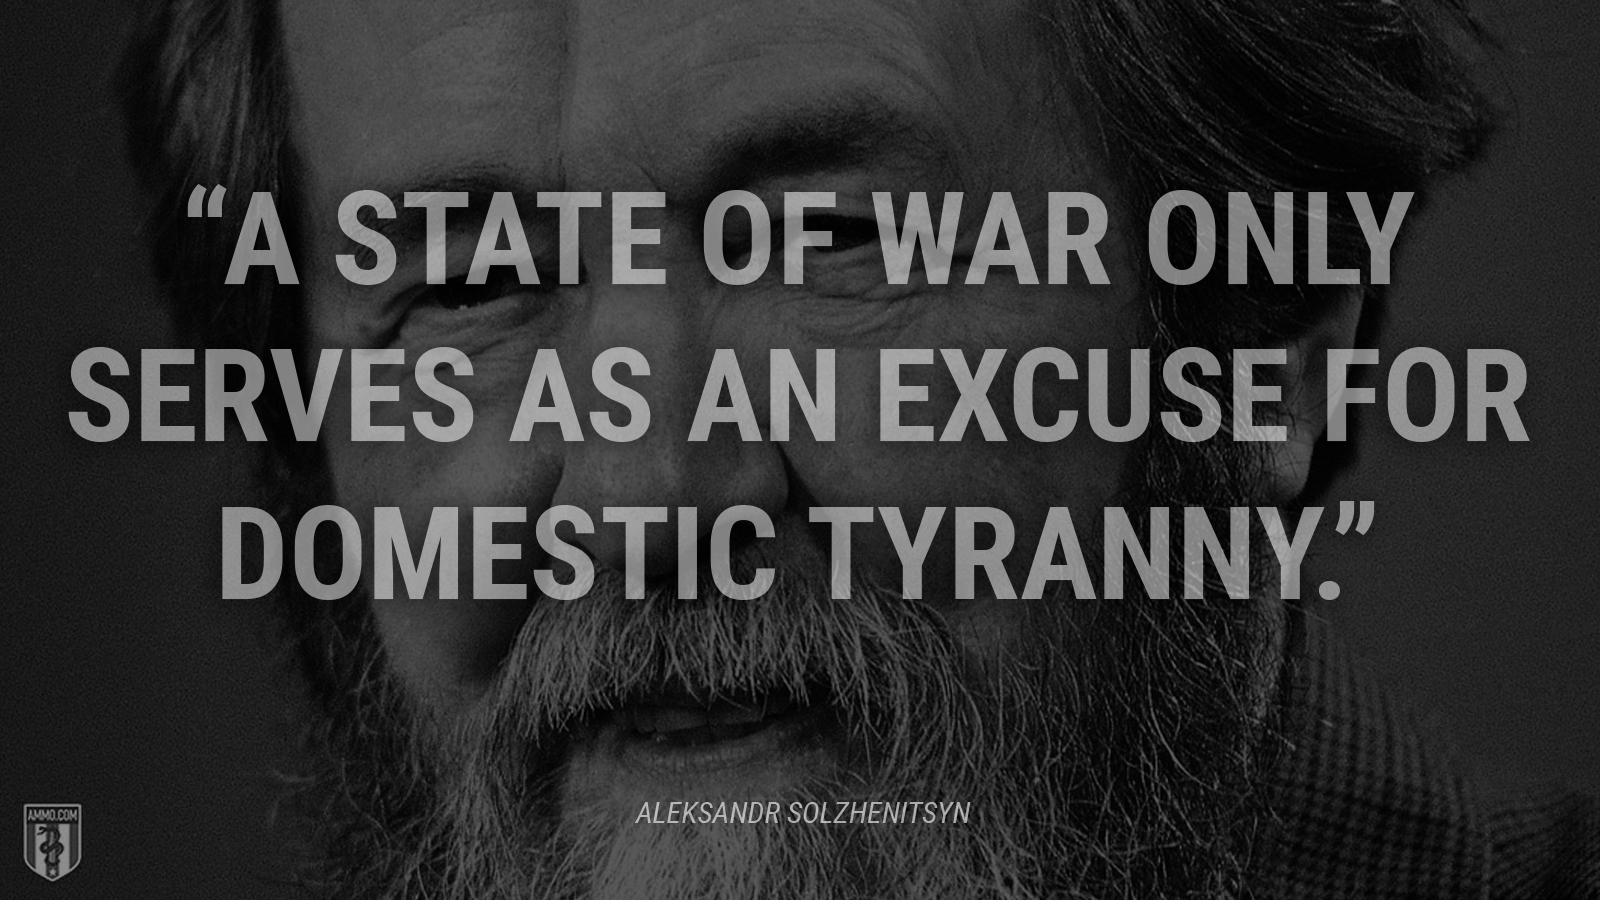 """A state of war only serves as an excuse for domestic tyranny."" - Aleksandr Solzhenitsyn"